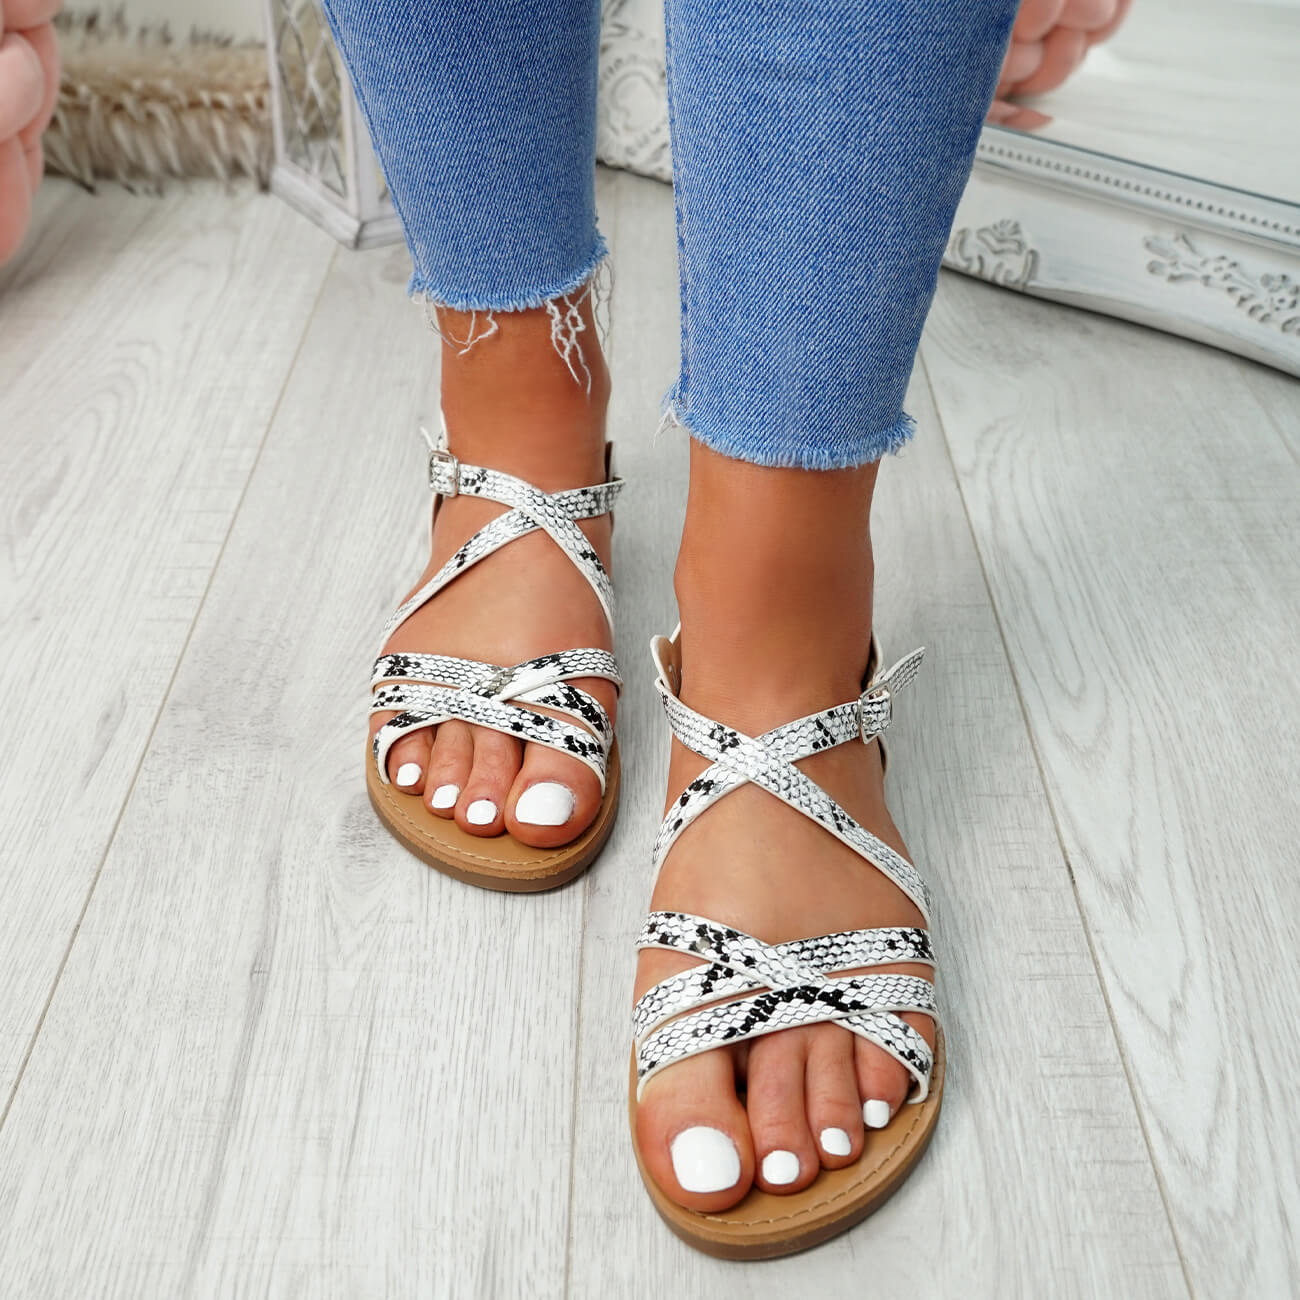 WOMENS-LADIES-ANKLE-STRAP-PEEP-TOE-BUCKLE-FLAT-SANDALS-SUMMER-CASUAL-SHOES thumbnail 30